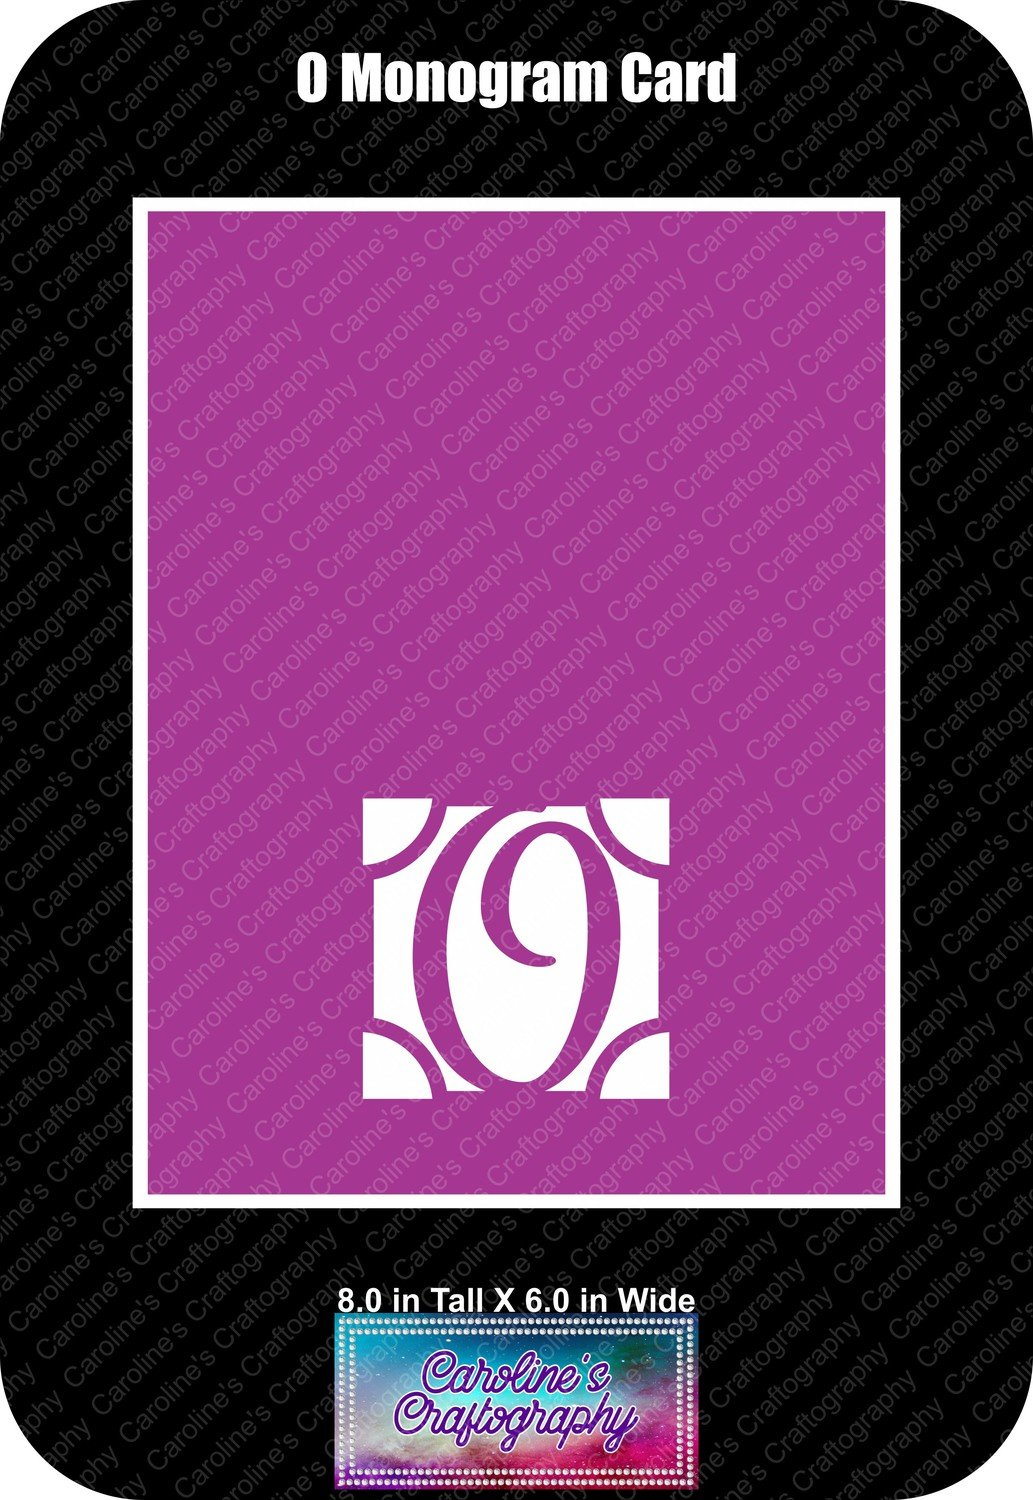 O Monogram Card Base